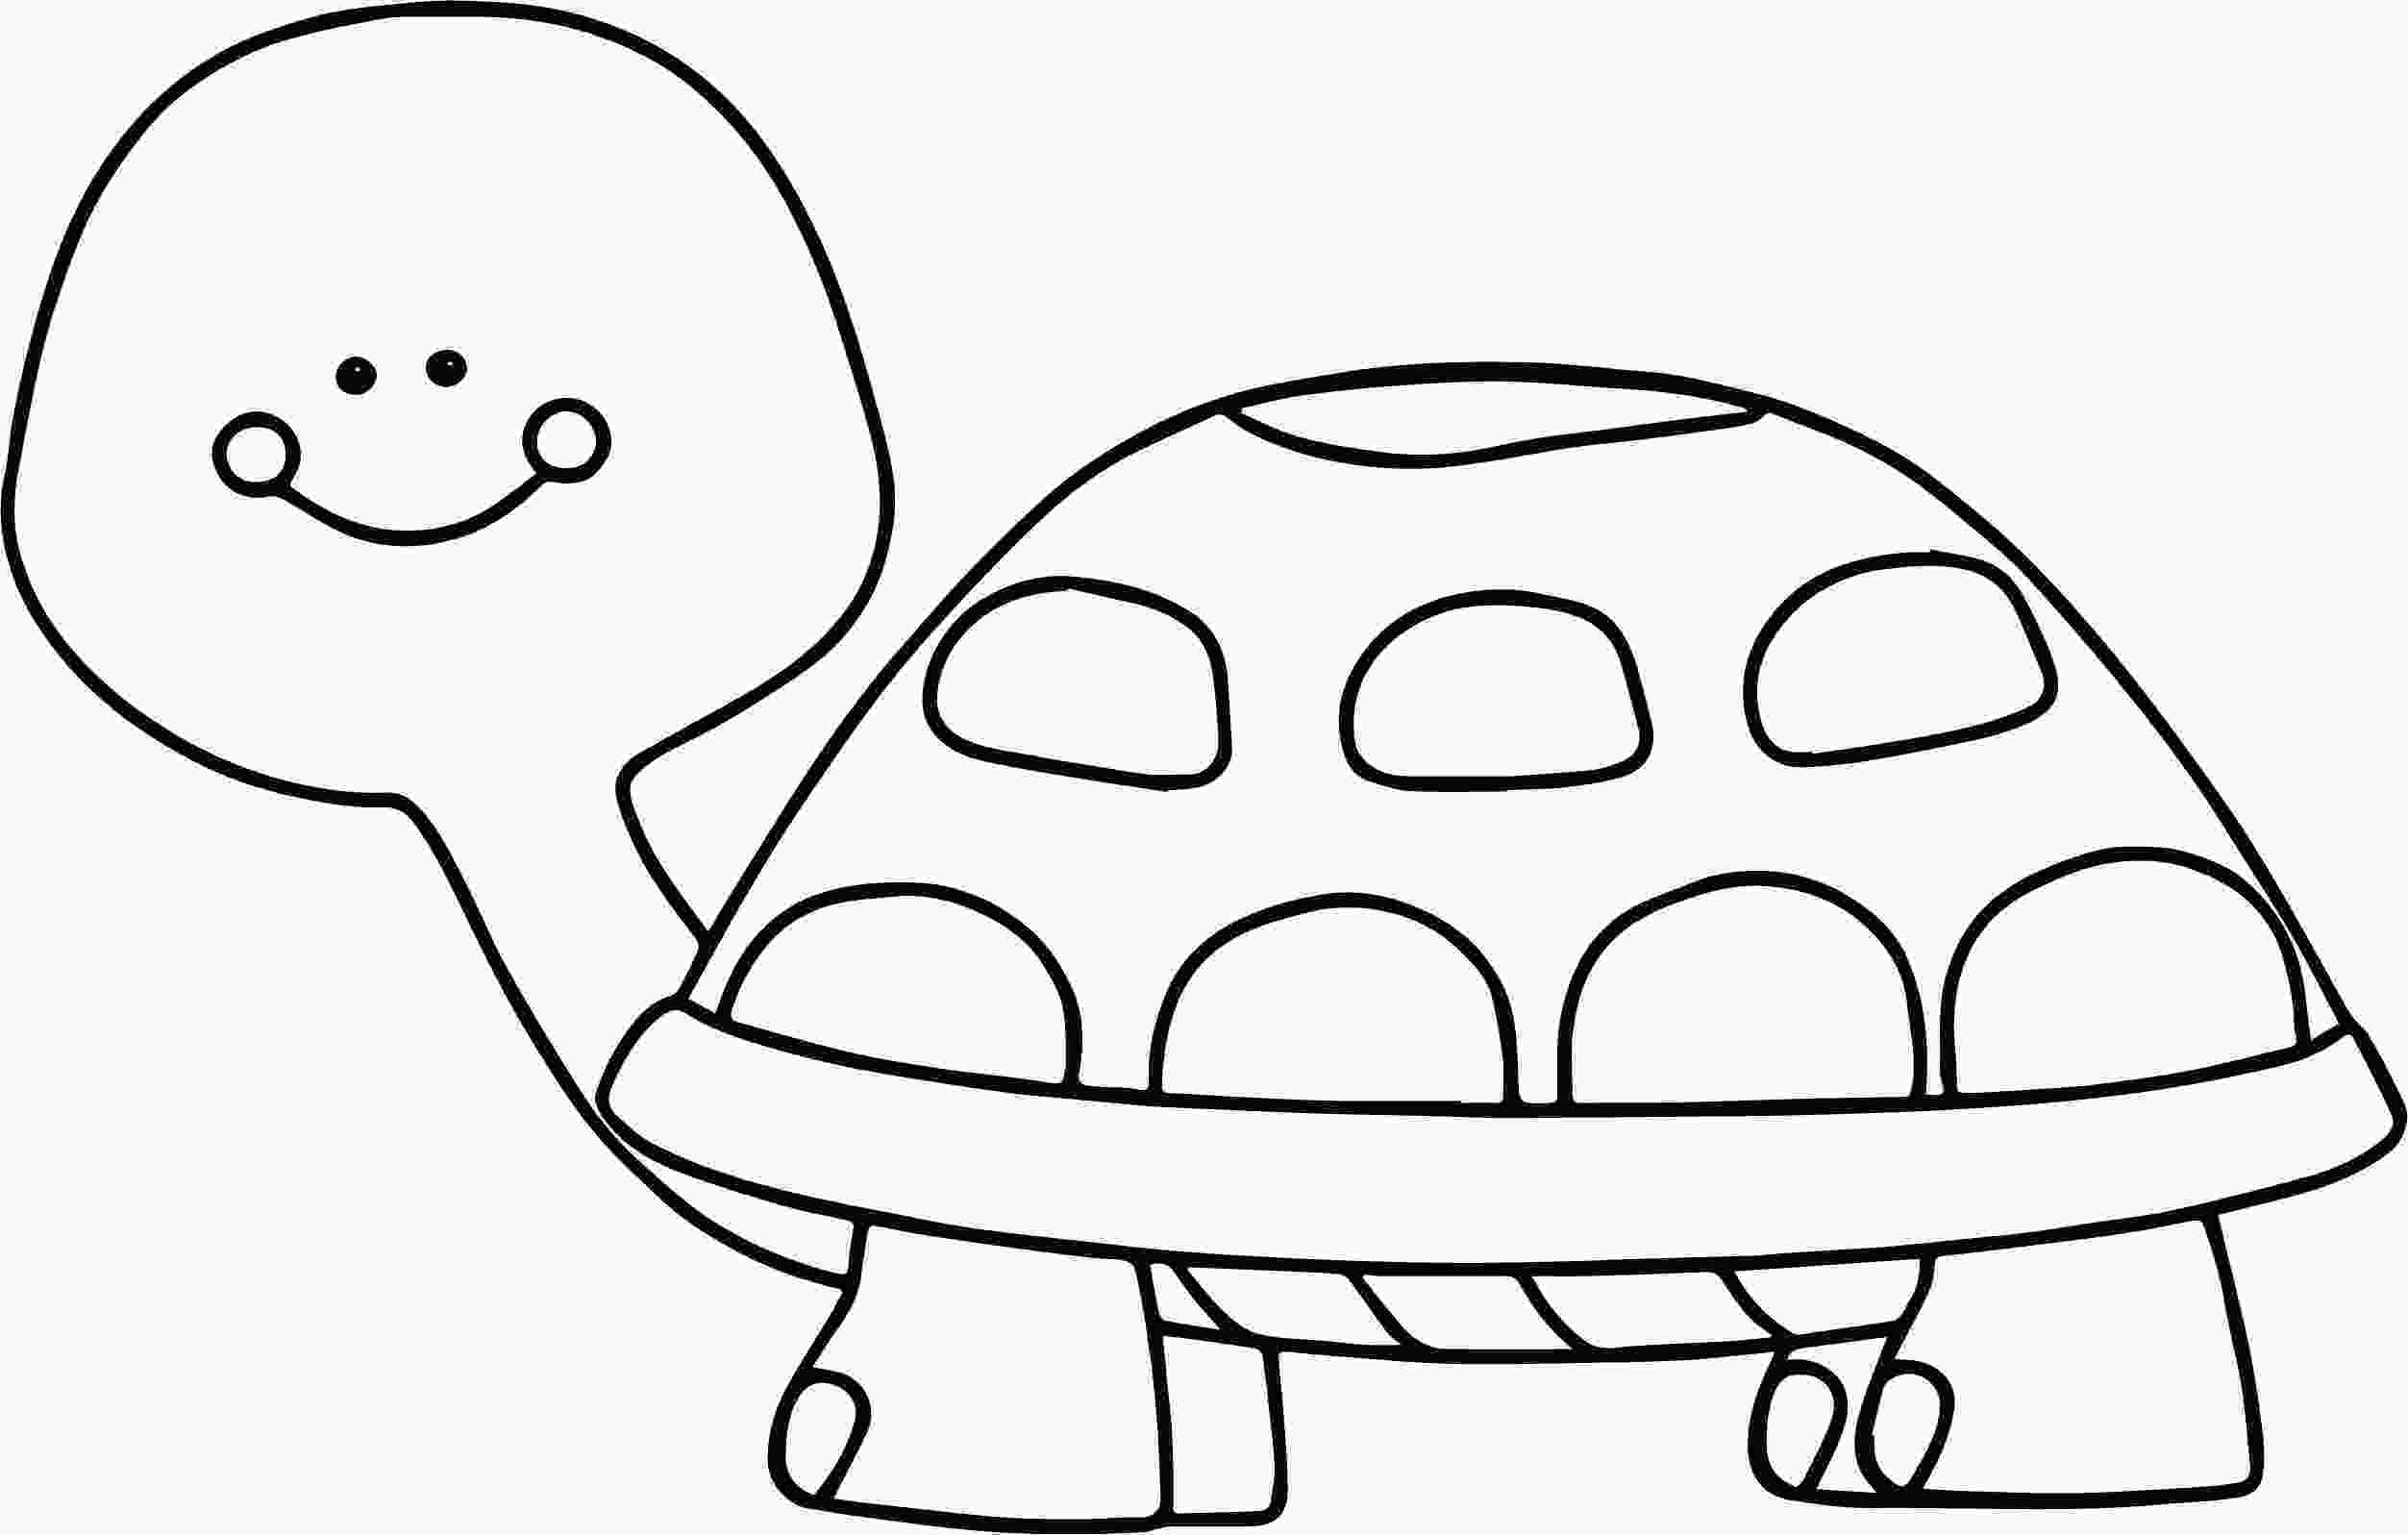 coloring page of turtle very funny tortoise turtle coloring page wecoloringpage